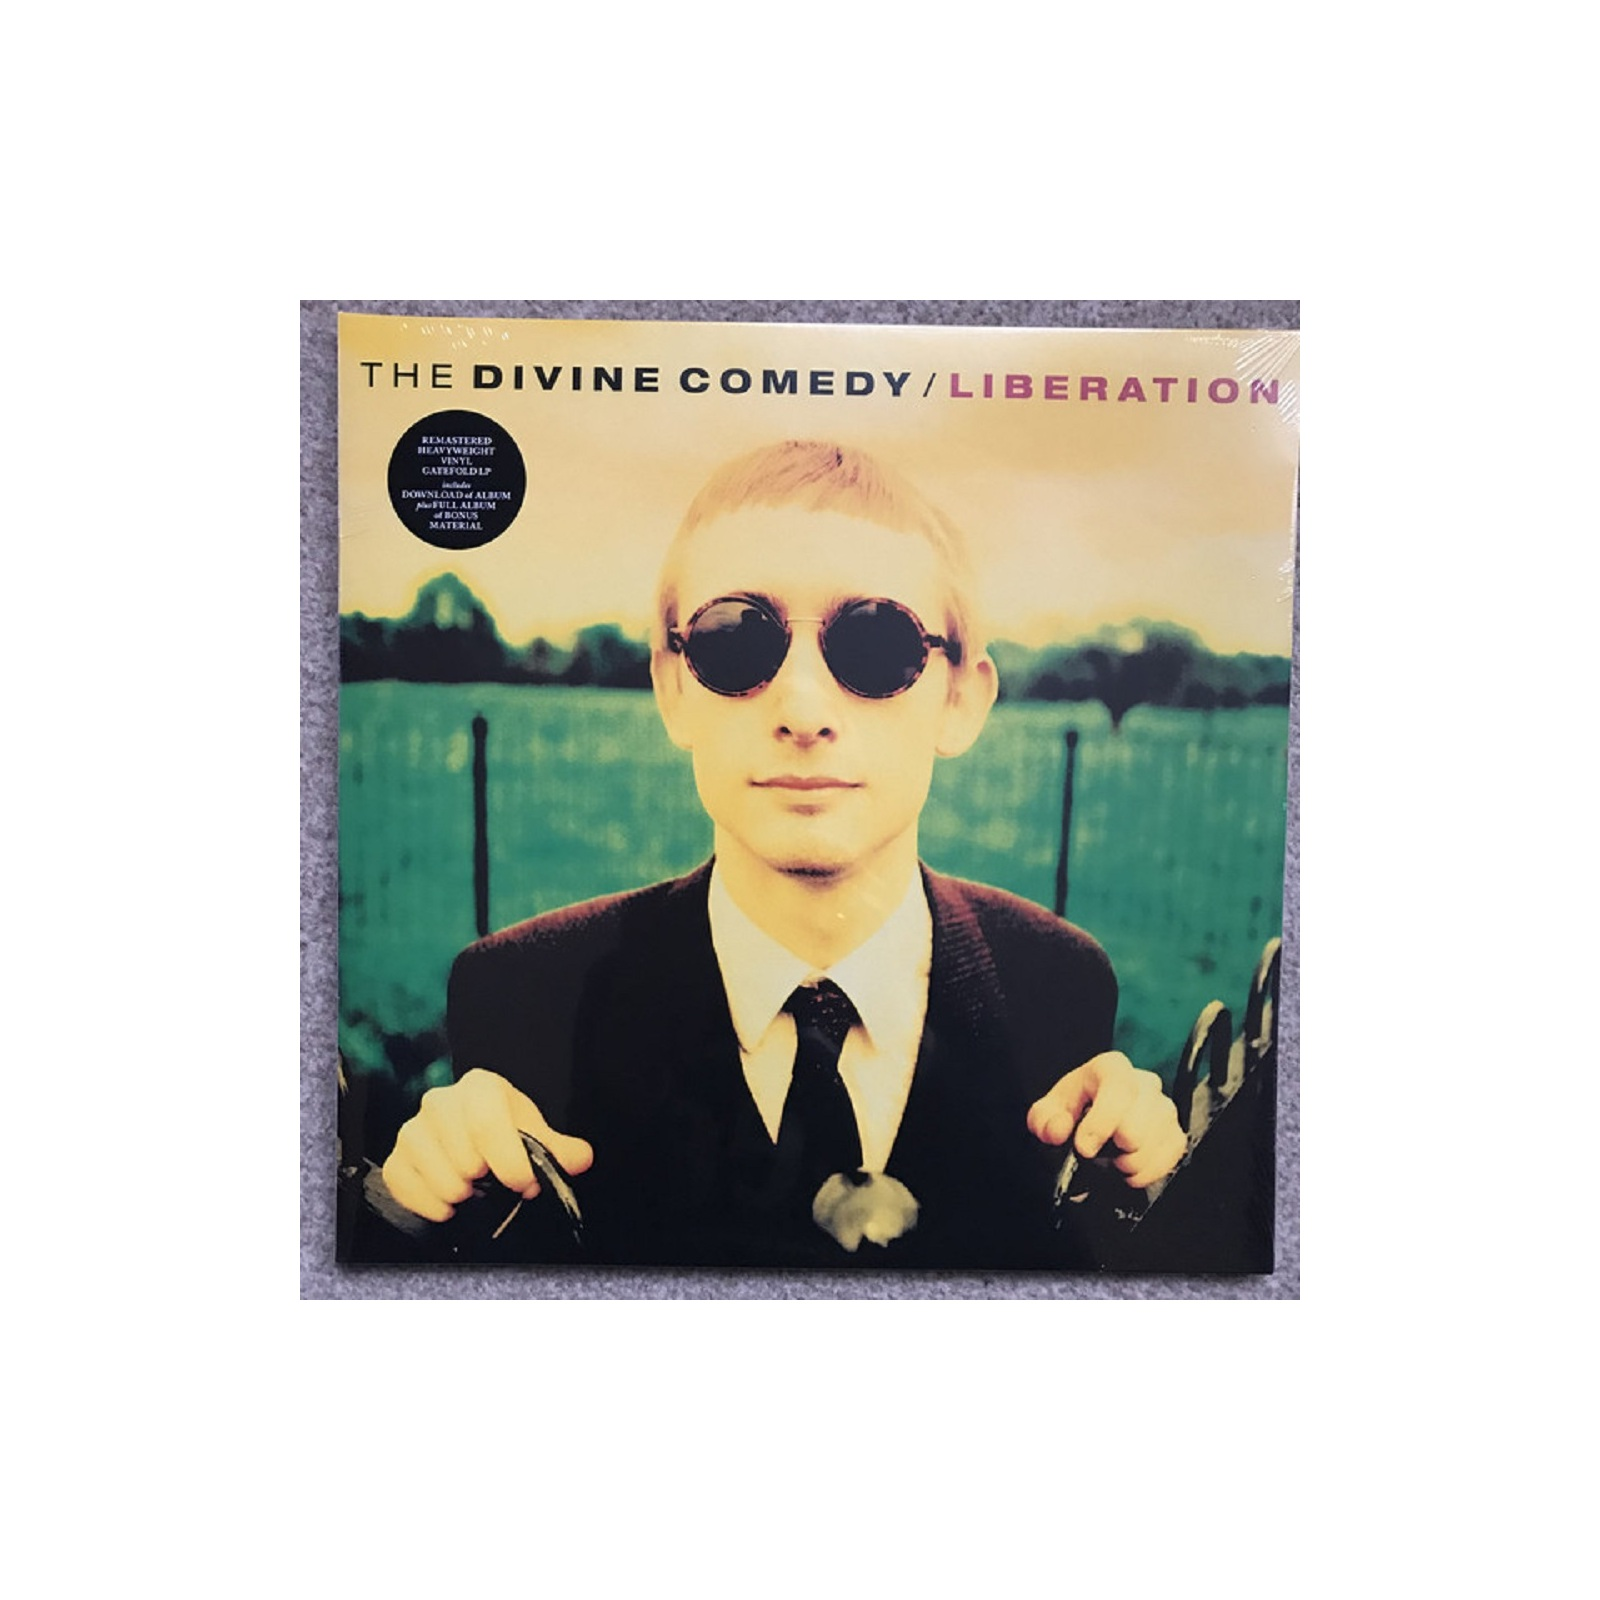 THE DIVINE COMEDY - LIBERATION (REISSUE, REMASTERED VINYL)